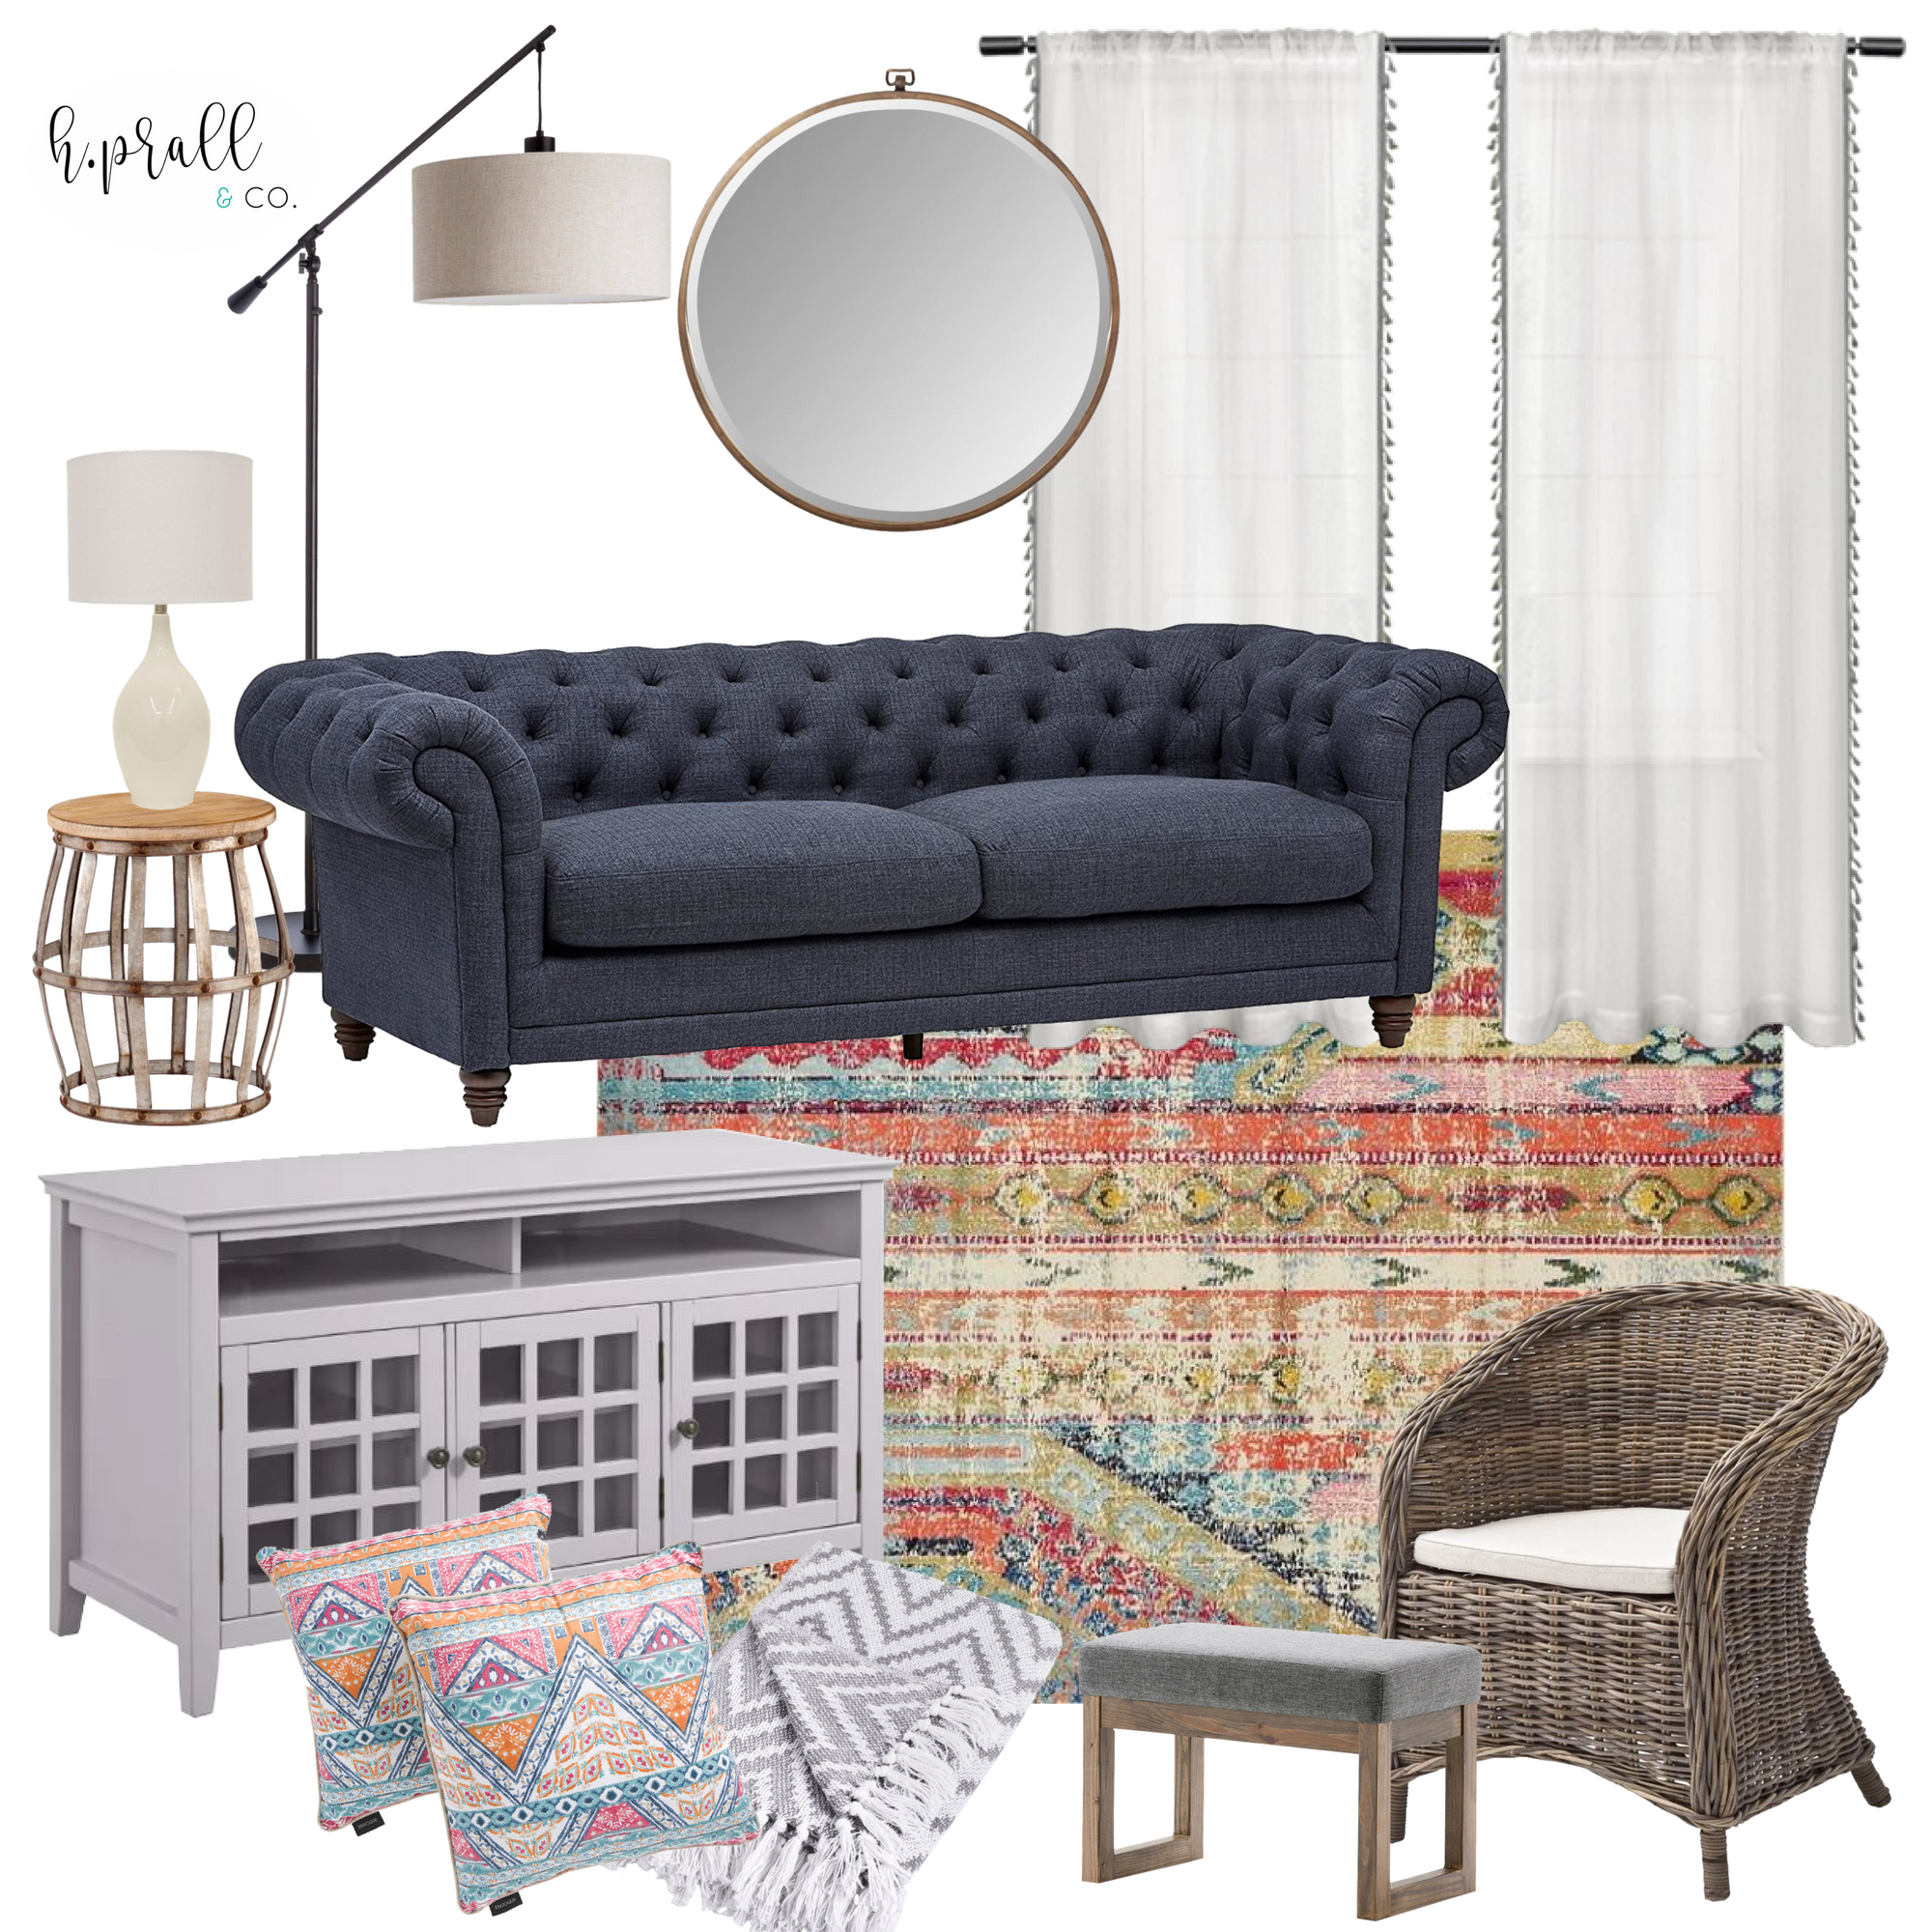 Living room design using pops of color   H.Prall & Co Interior Decorating in Des Moines, IA